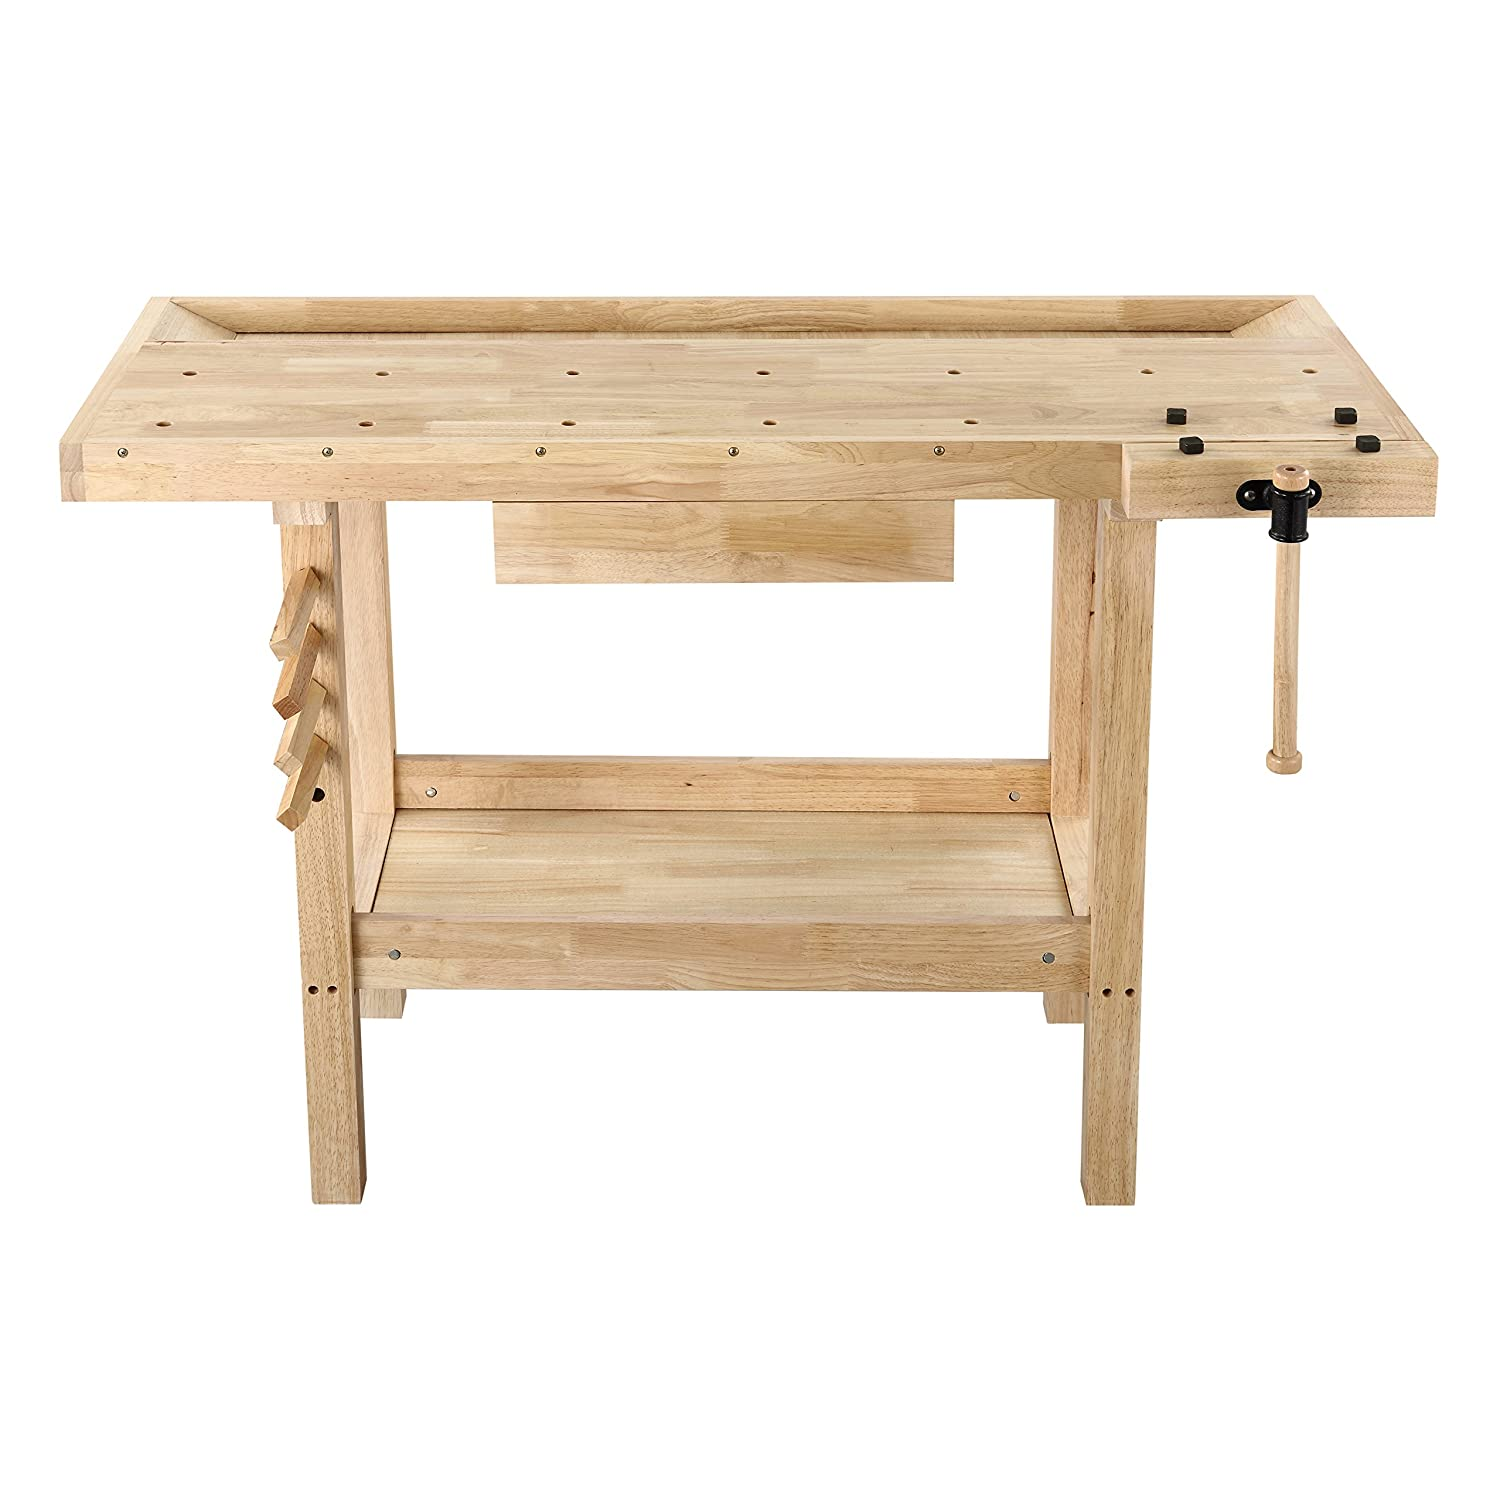 Olympia Tools 84-906 Workbench